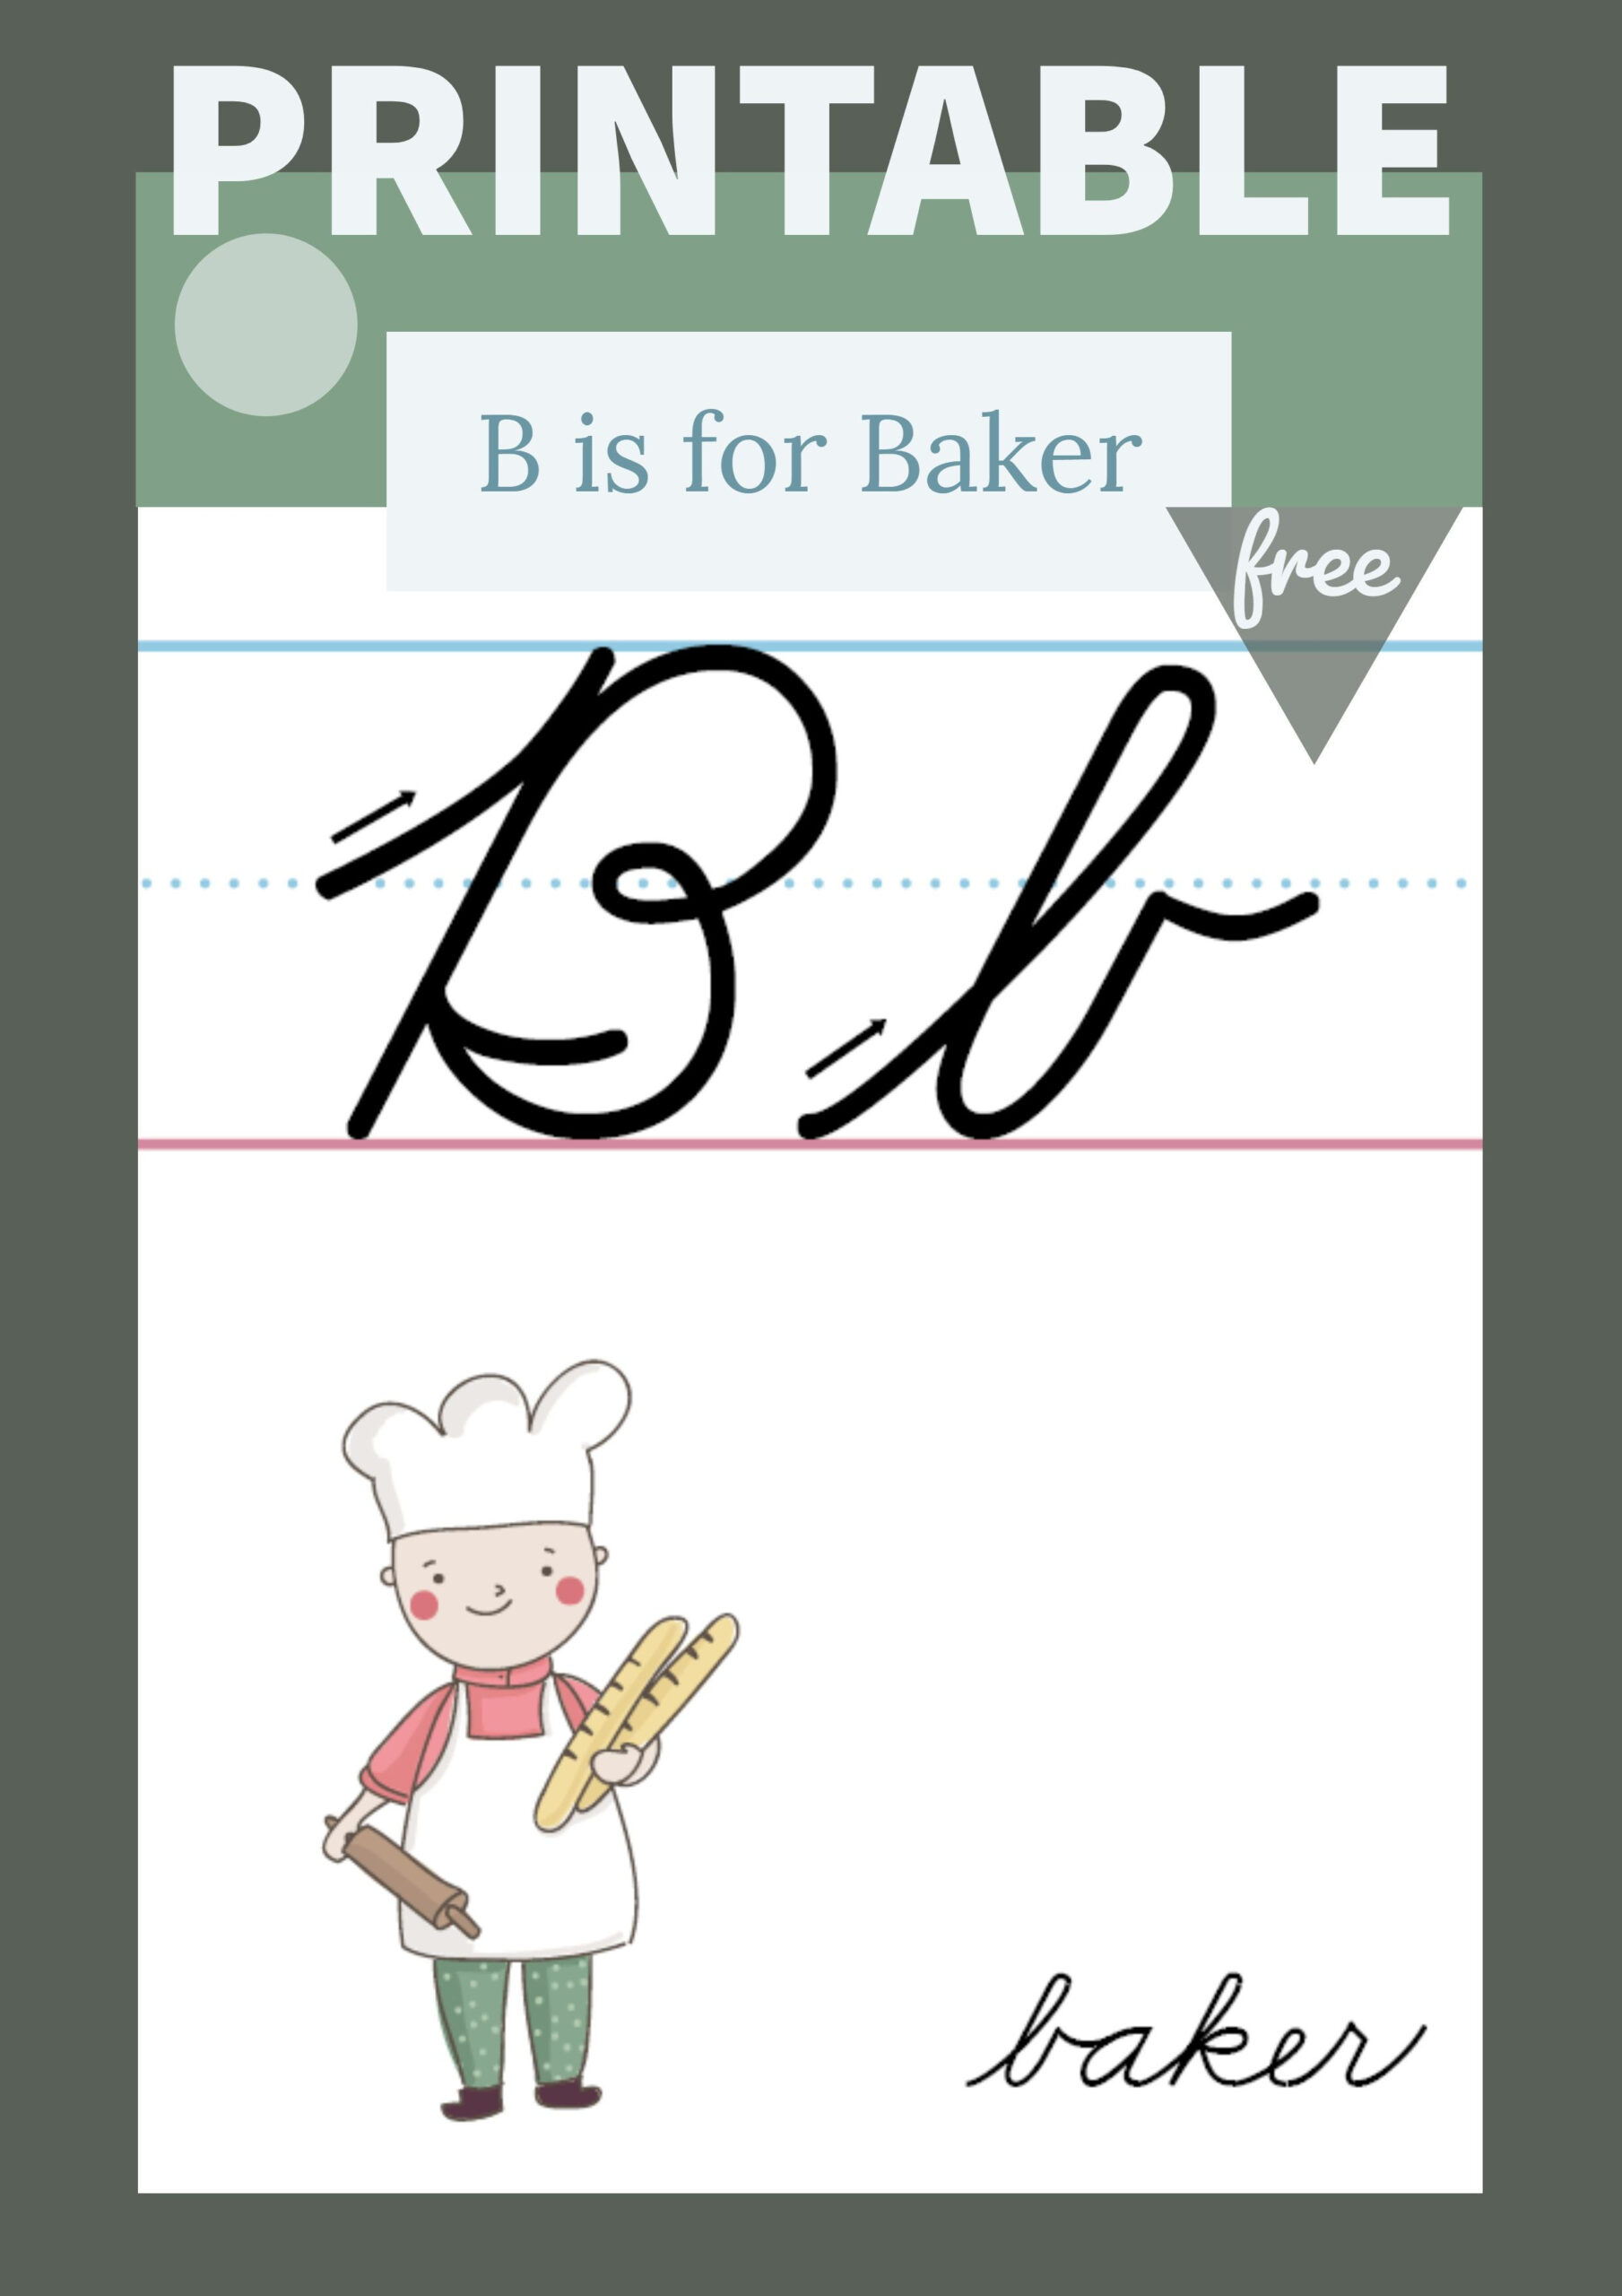 The Letter B In Cursive- Printable Poster | Primarylearning